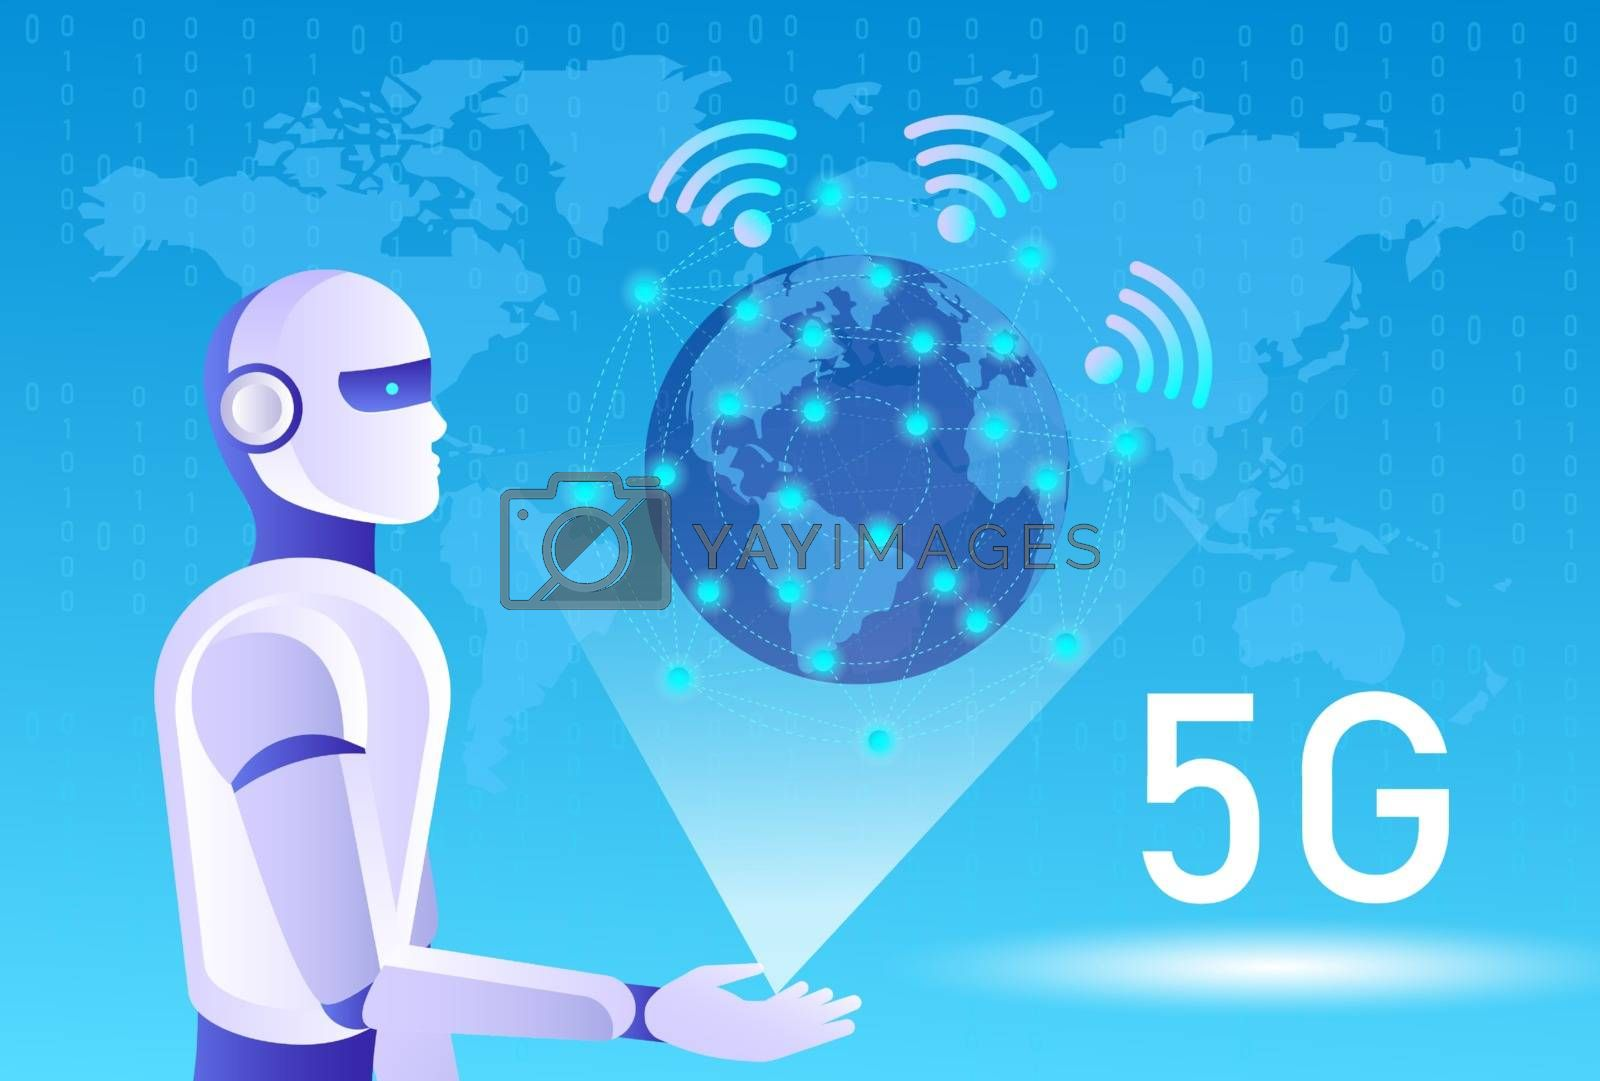 5G network wireless systems and internet of things, Smart city and communication network. 5G wireless mobile internet wifi connection. Robot touching digital interface. Vector illustration